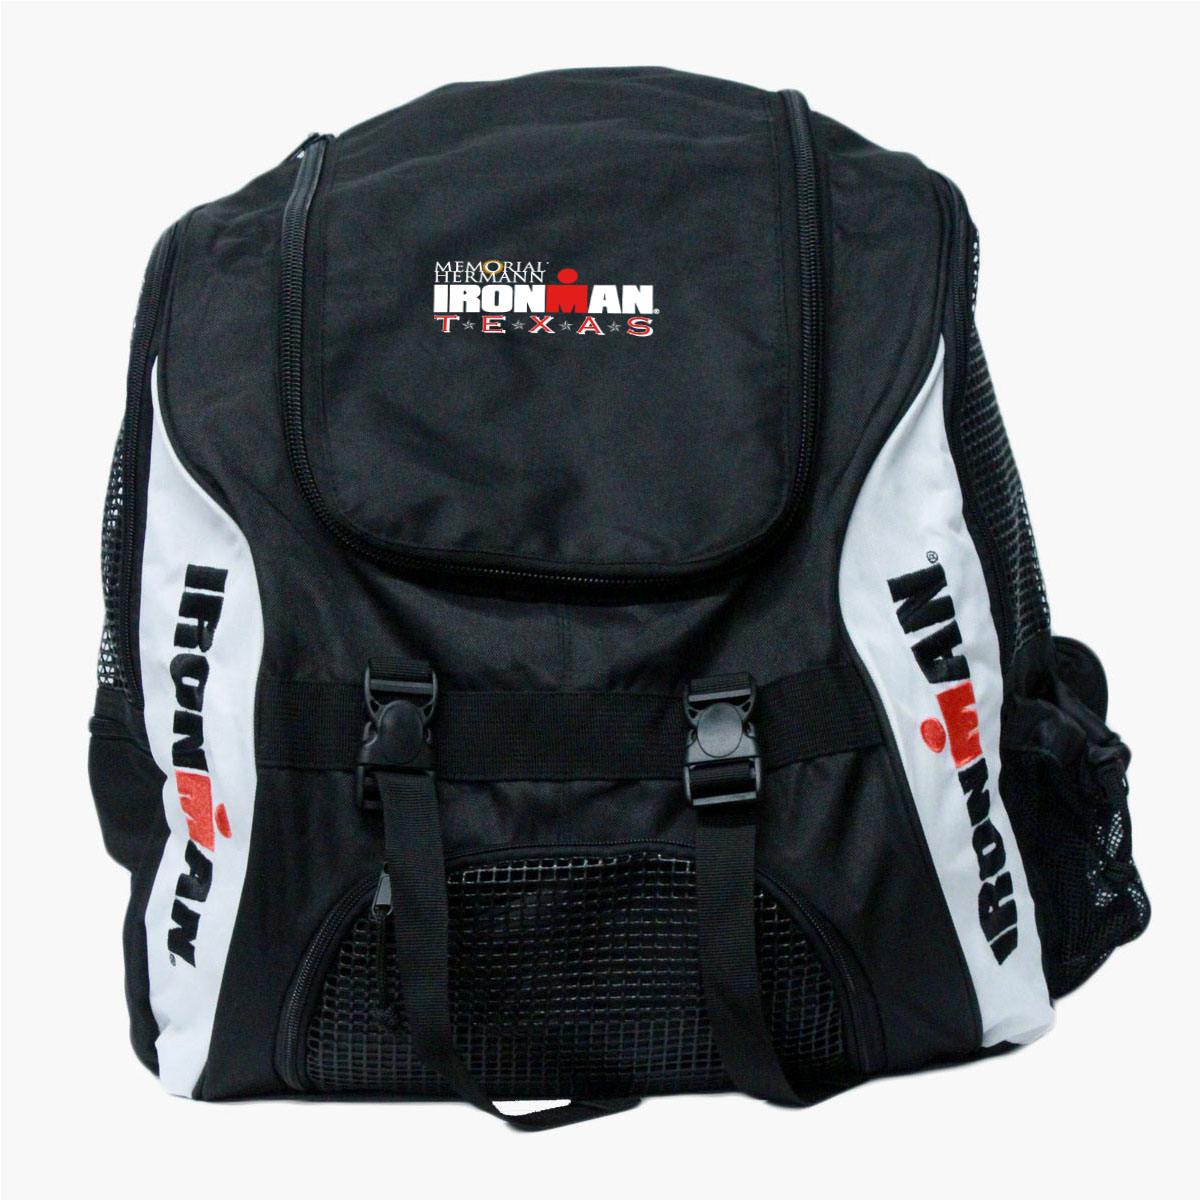 IRONMAN Texas Event Backpack